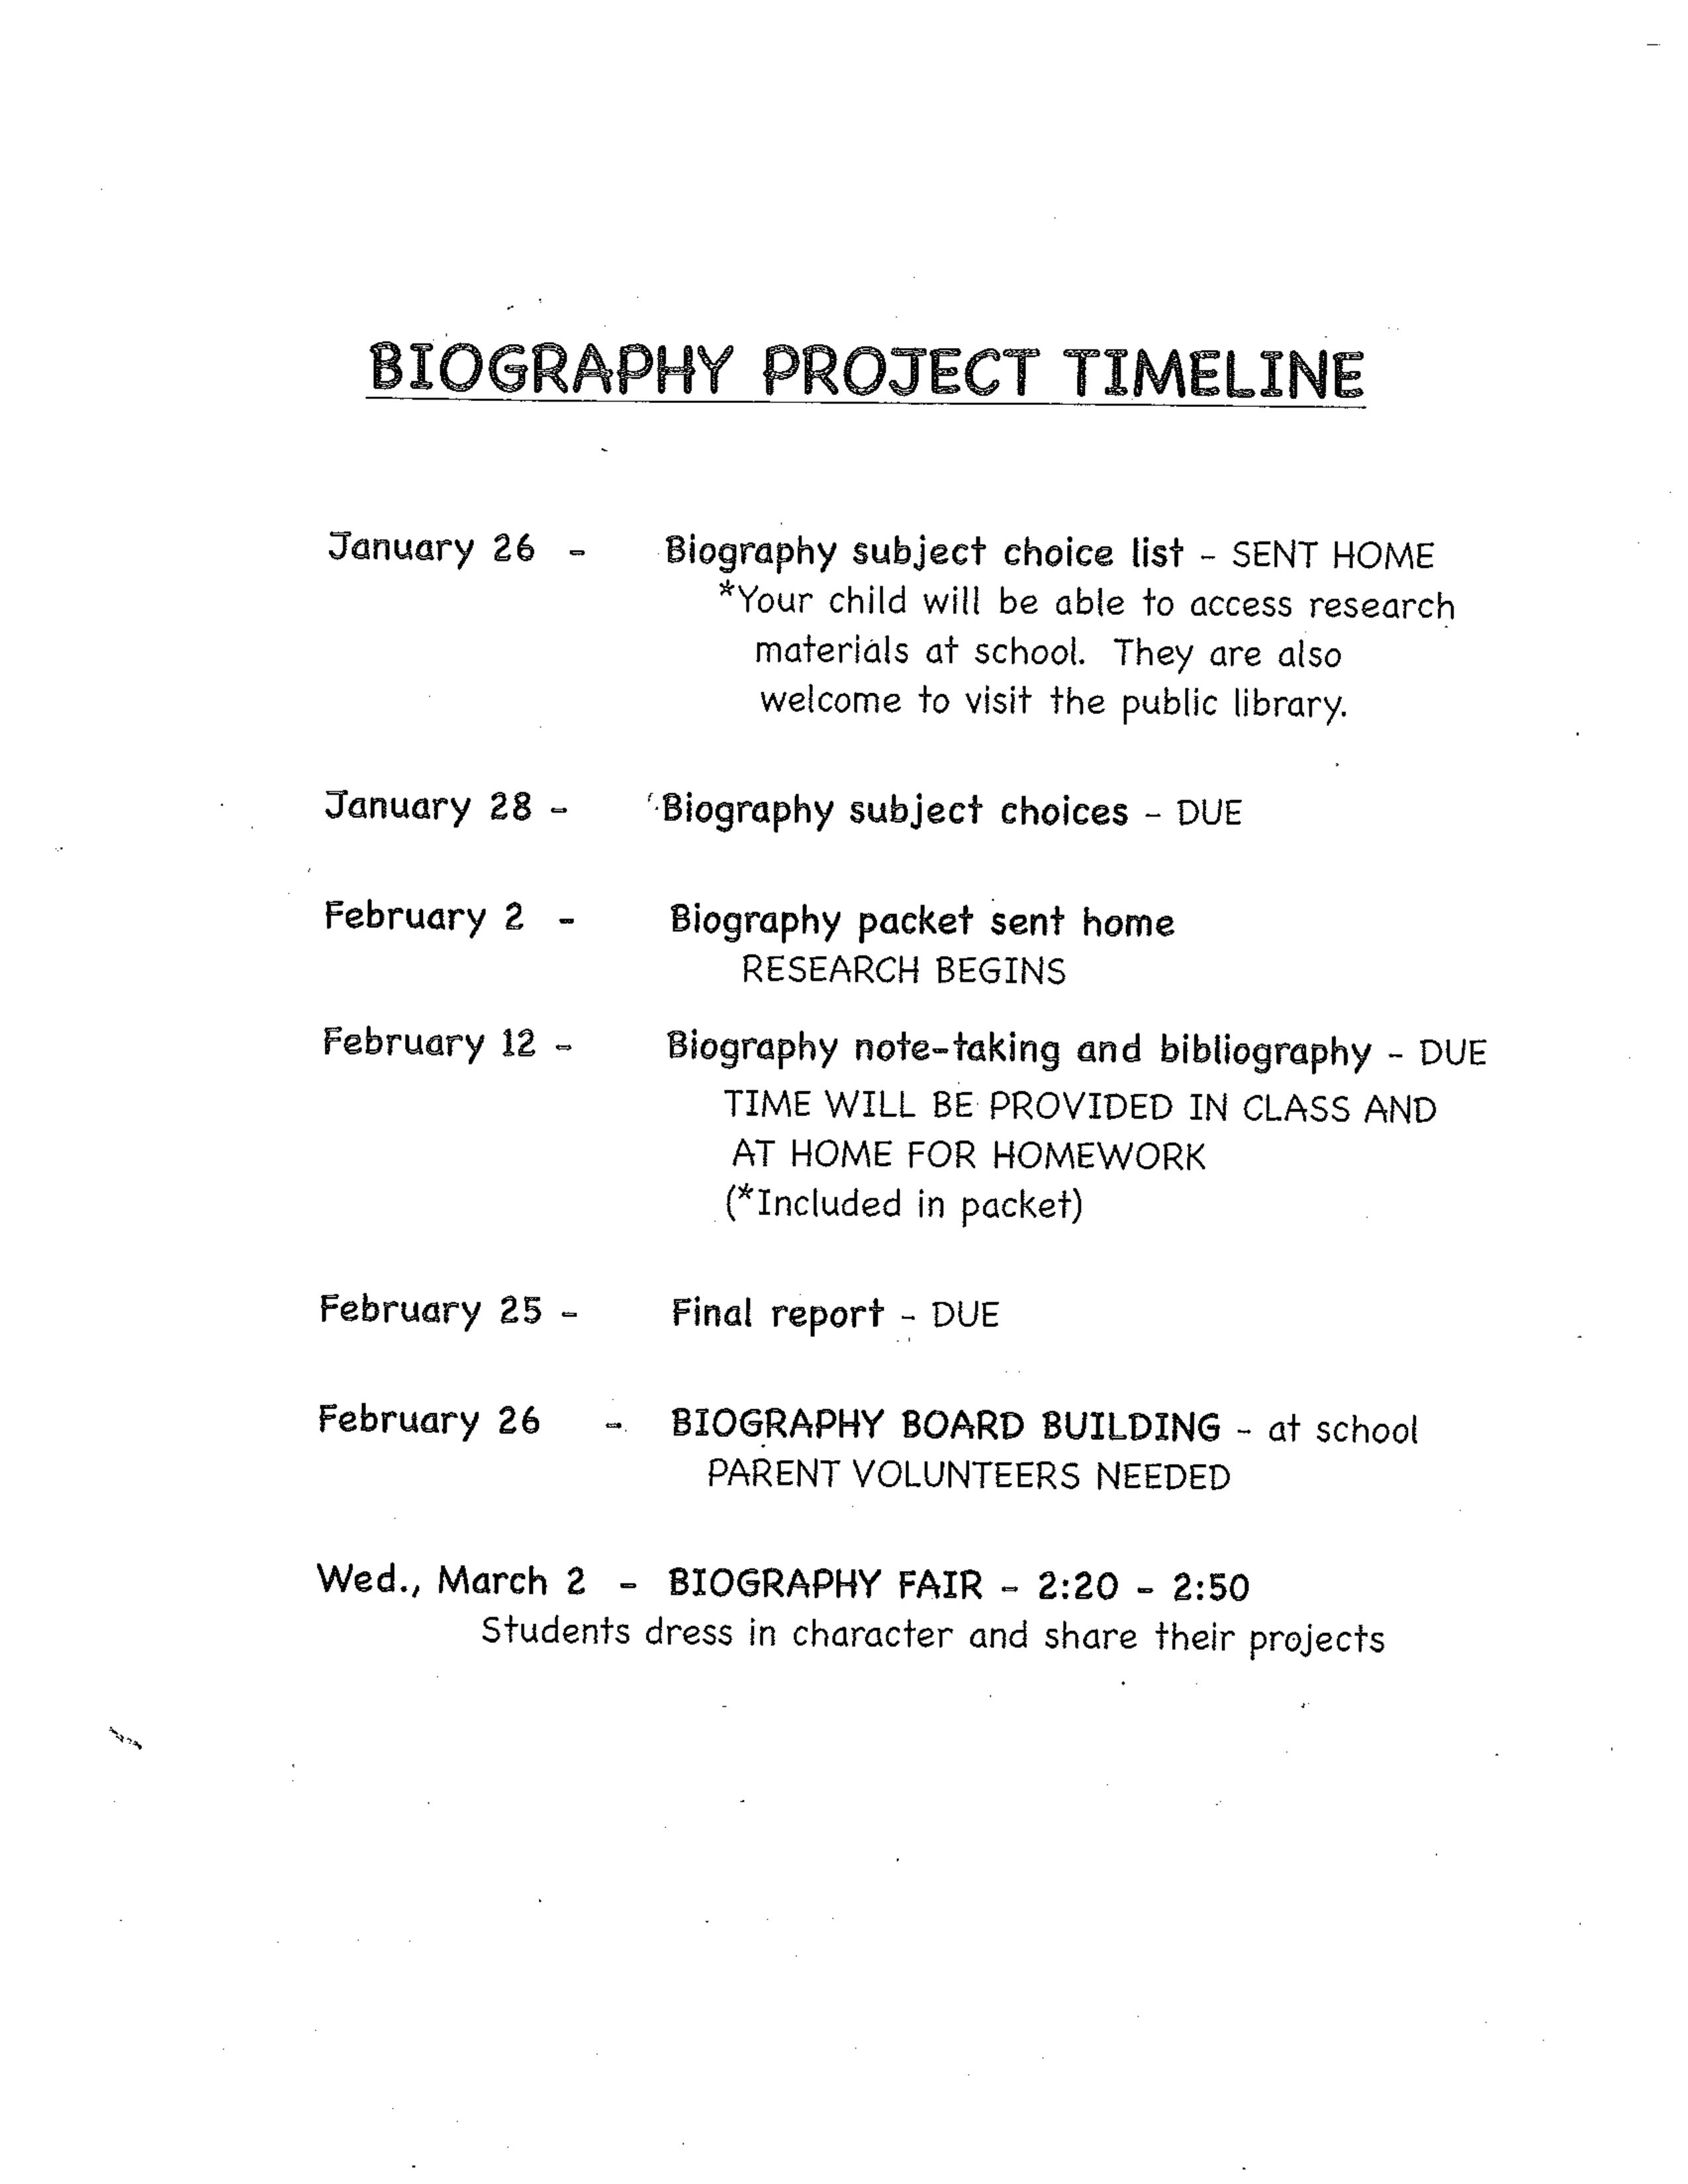 Biography Information is Here Monroe Elementary Third Grade – Sample Biography Timeline